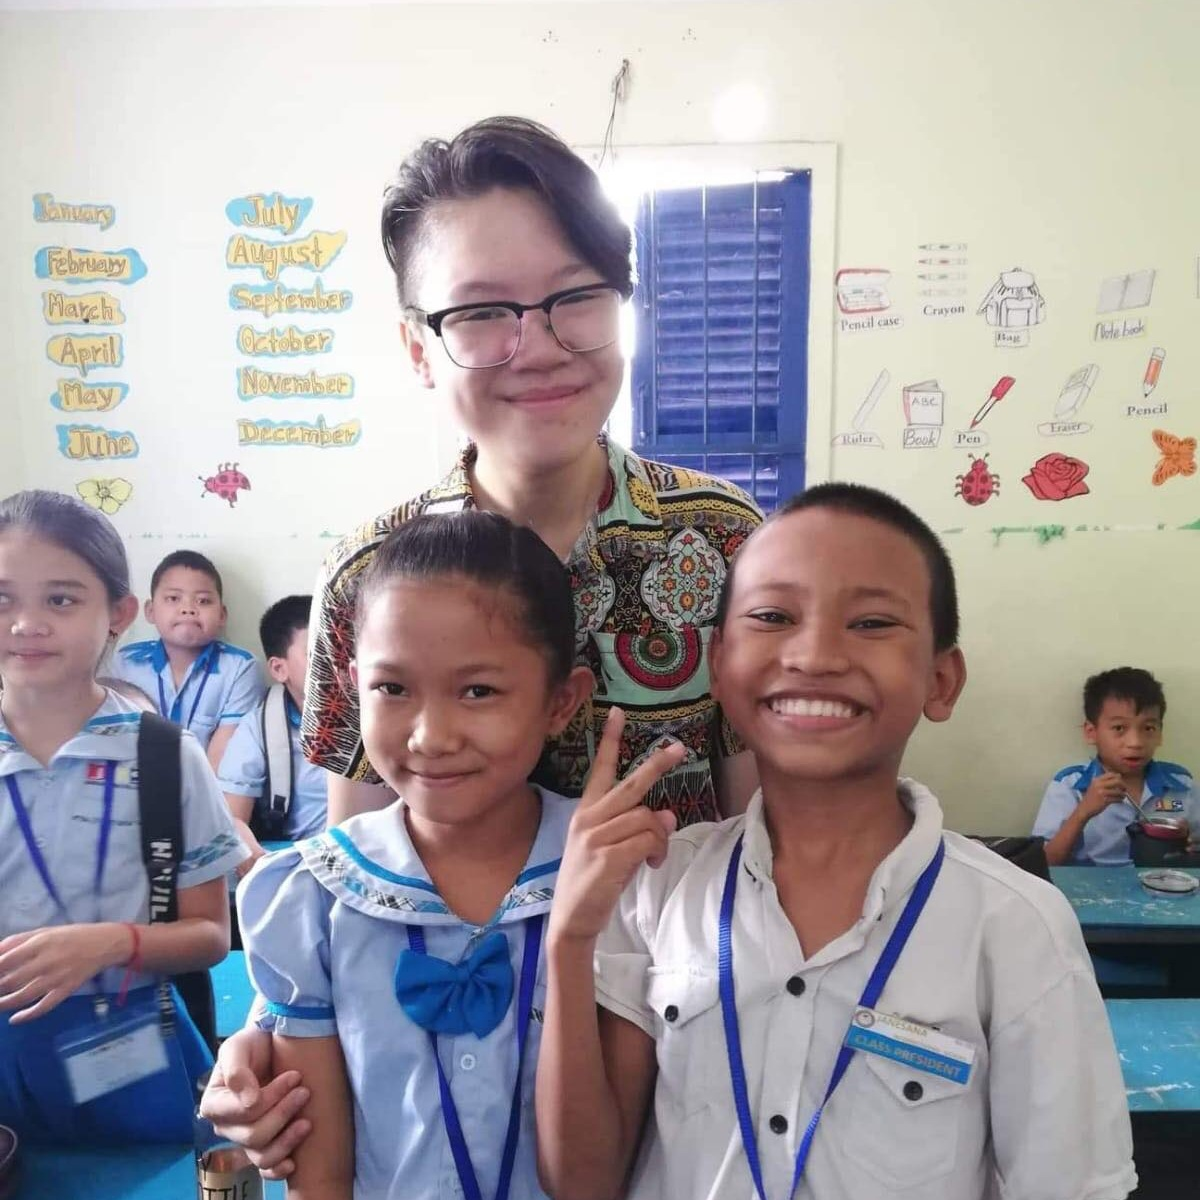 """catherin laurens-melbourne university - """"Maybe a year ago I wouldn't have thought I would be spending my summer break in a foreign country, no less teaching English! The friends I made along the way and the moments I get to experience made this without a doubt, the best way I could've spent my break.""""Global Volunteer to Cambodia 2019"""